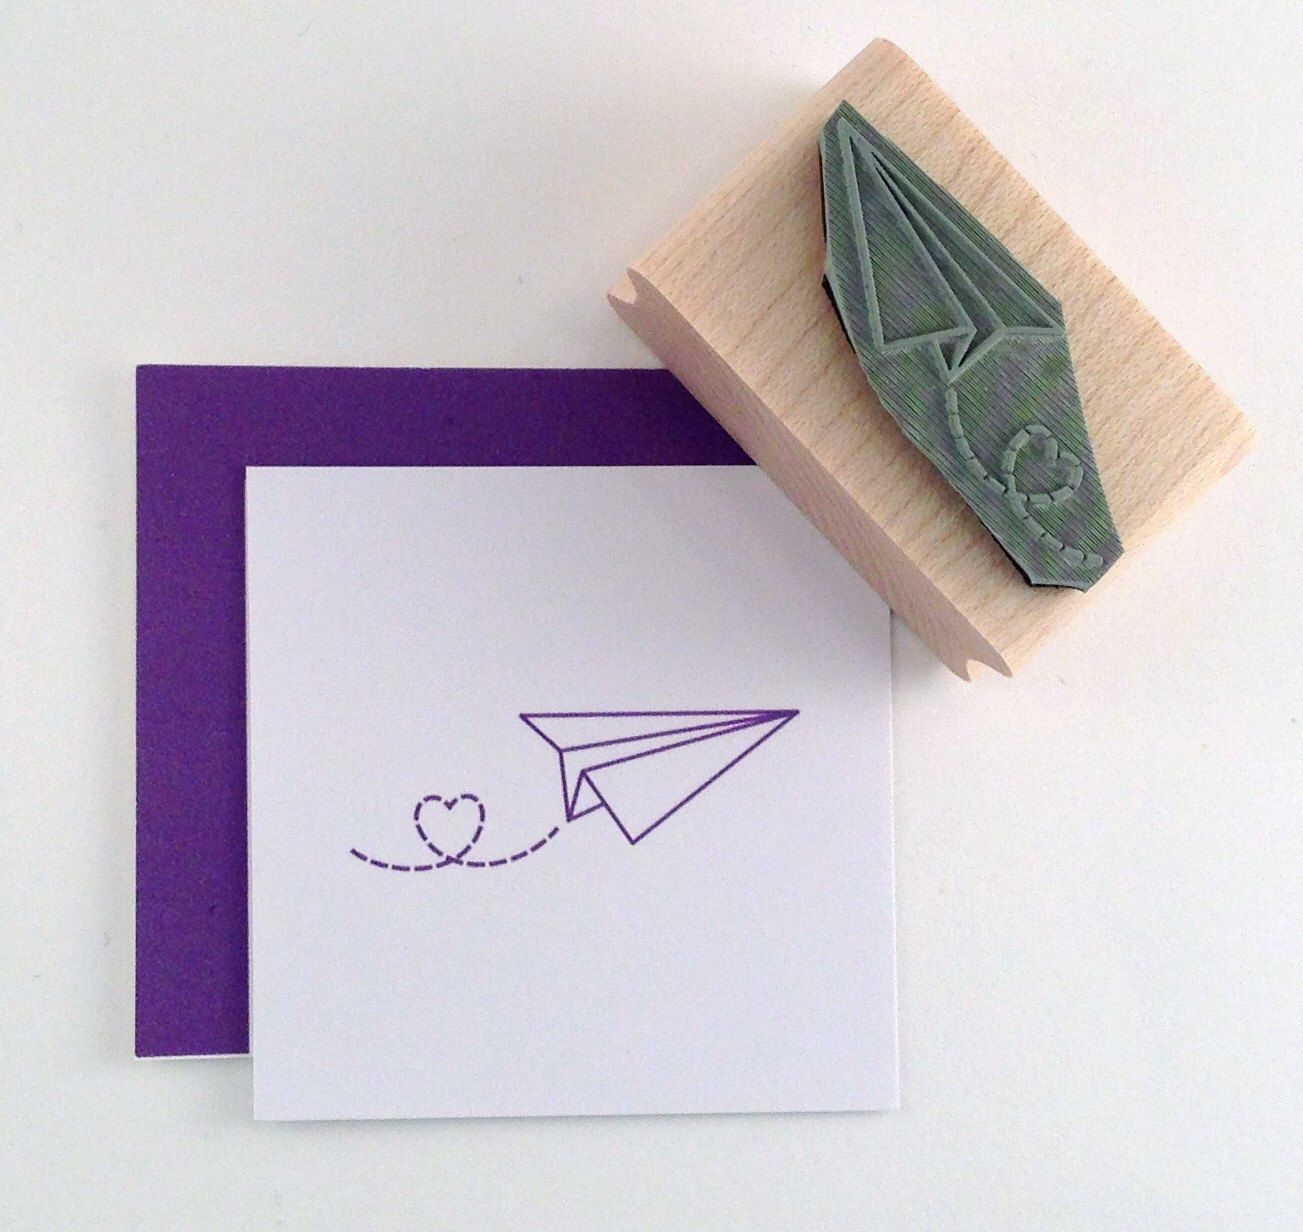 Paper Airplane With Heart Trail Rubber Stamp By Cupcaketree On Etsy Https Www Etsy Com Listing 179 Paper